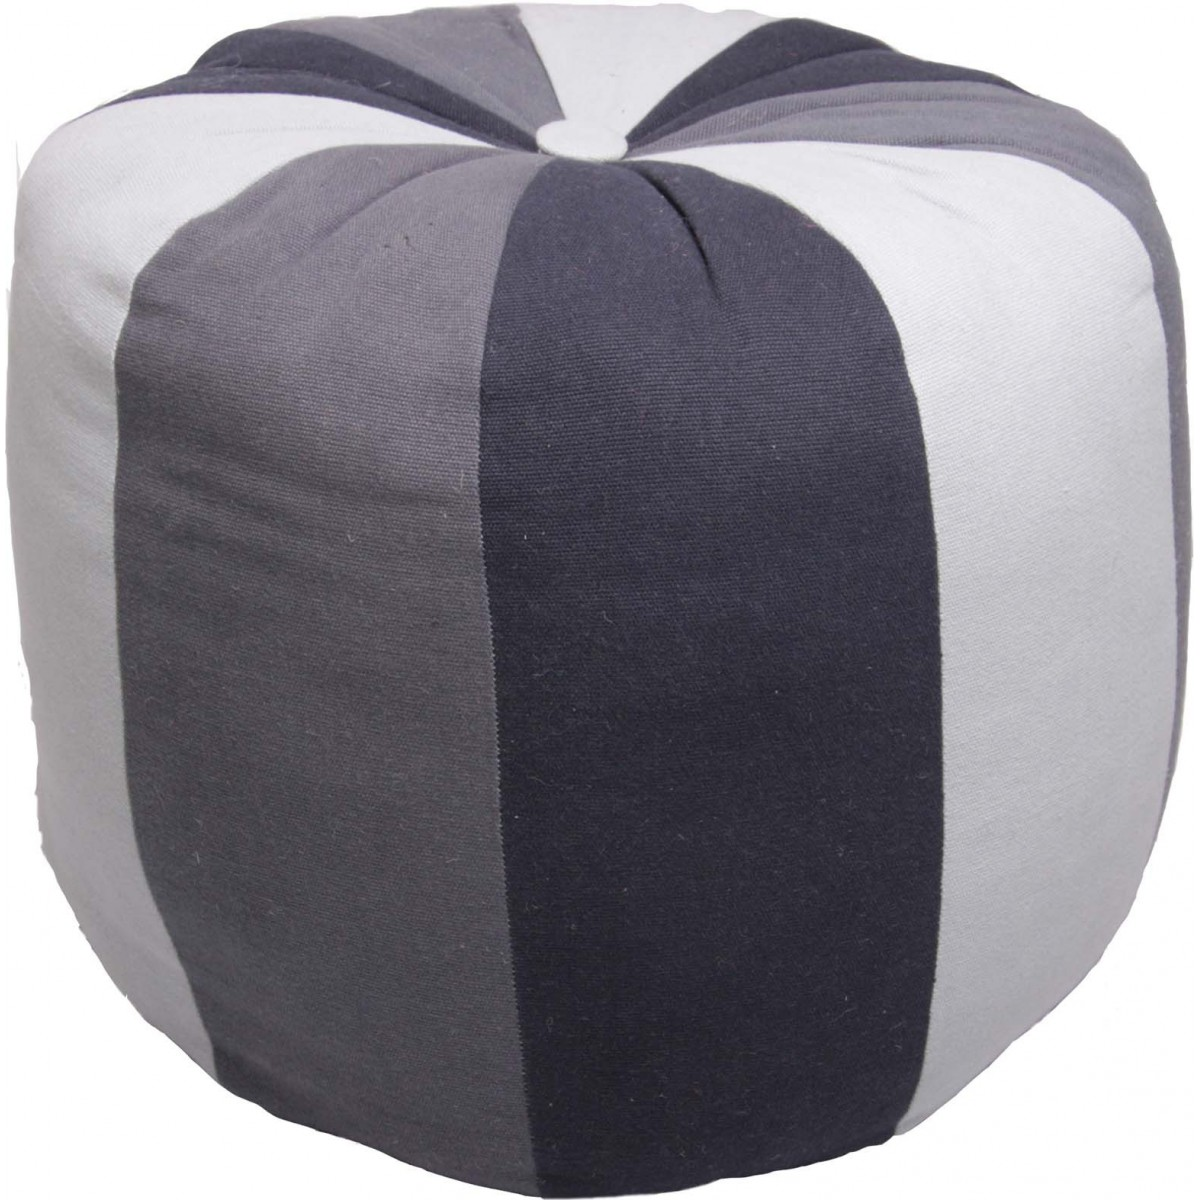 pouf enfant original gris beige big ball par 1 pied sur terre. Black Bedroom Furniture Sets. Home Design Ideas